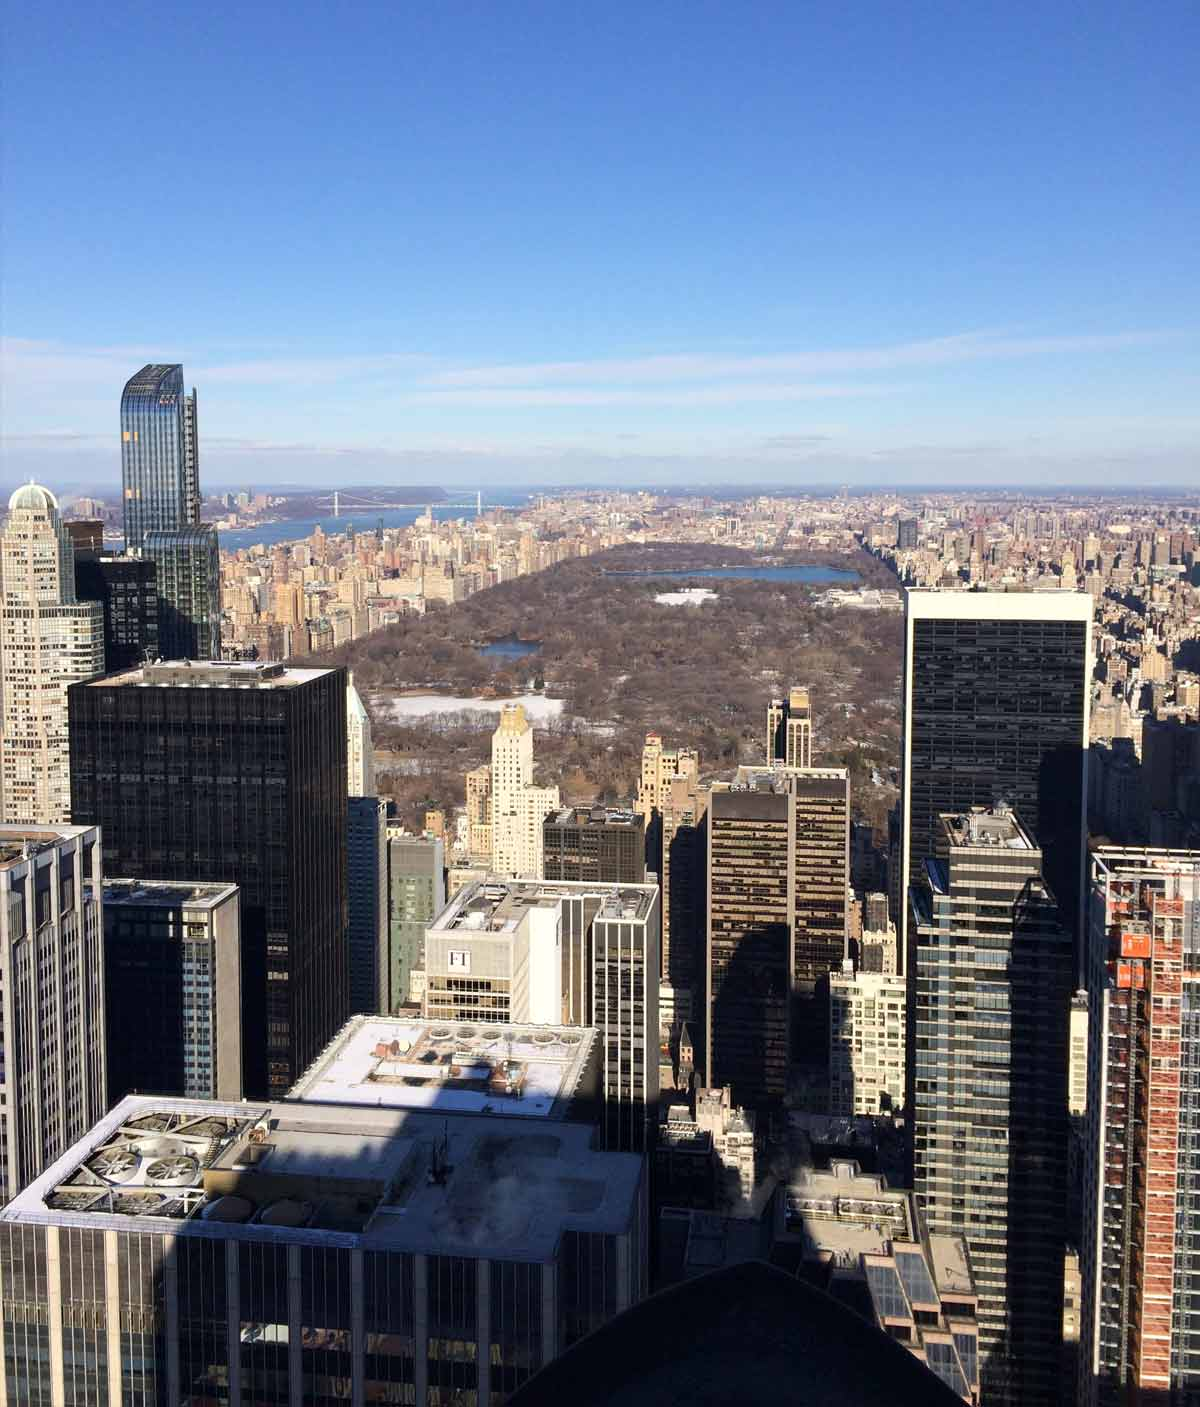 View of Manhattan and Central Park. Image by Laura Blanksby